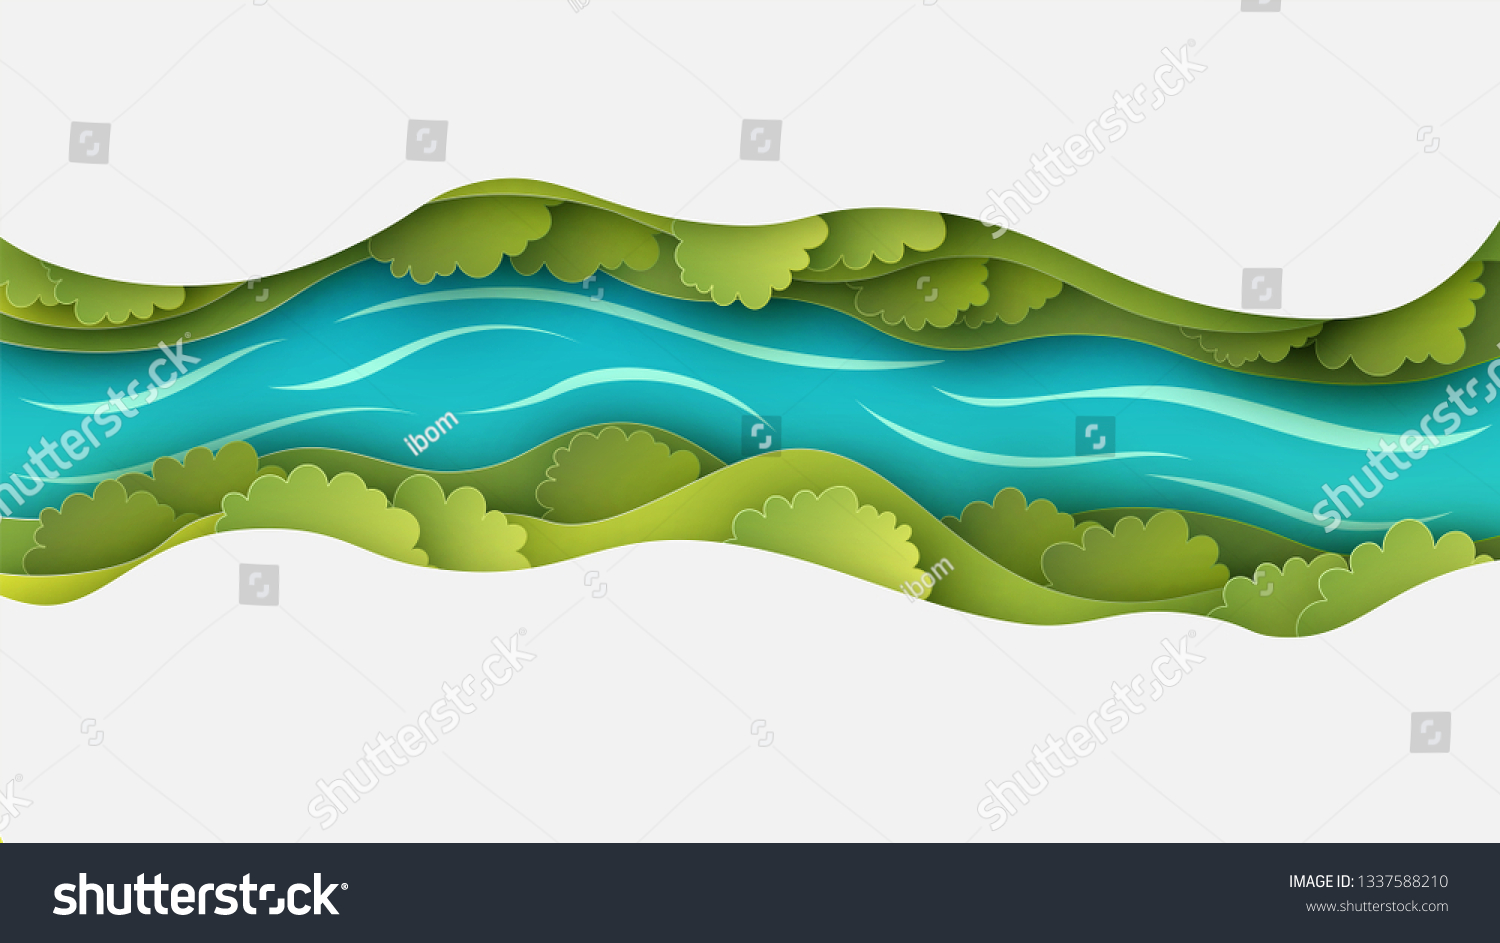 Paper layer cut of top view landscape in forest with trees, river, cloud and narrow valley. Landscape design on paper art. paper cut and craft style. vector, illustration.